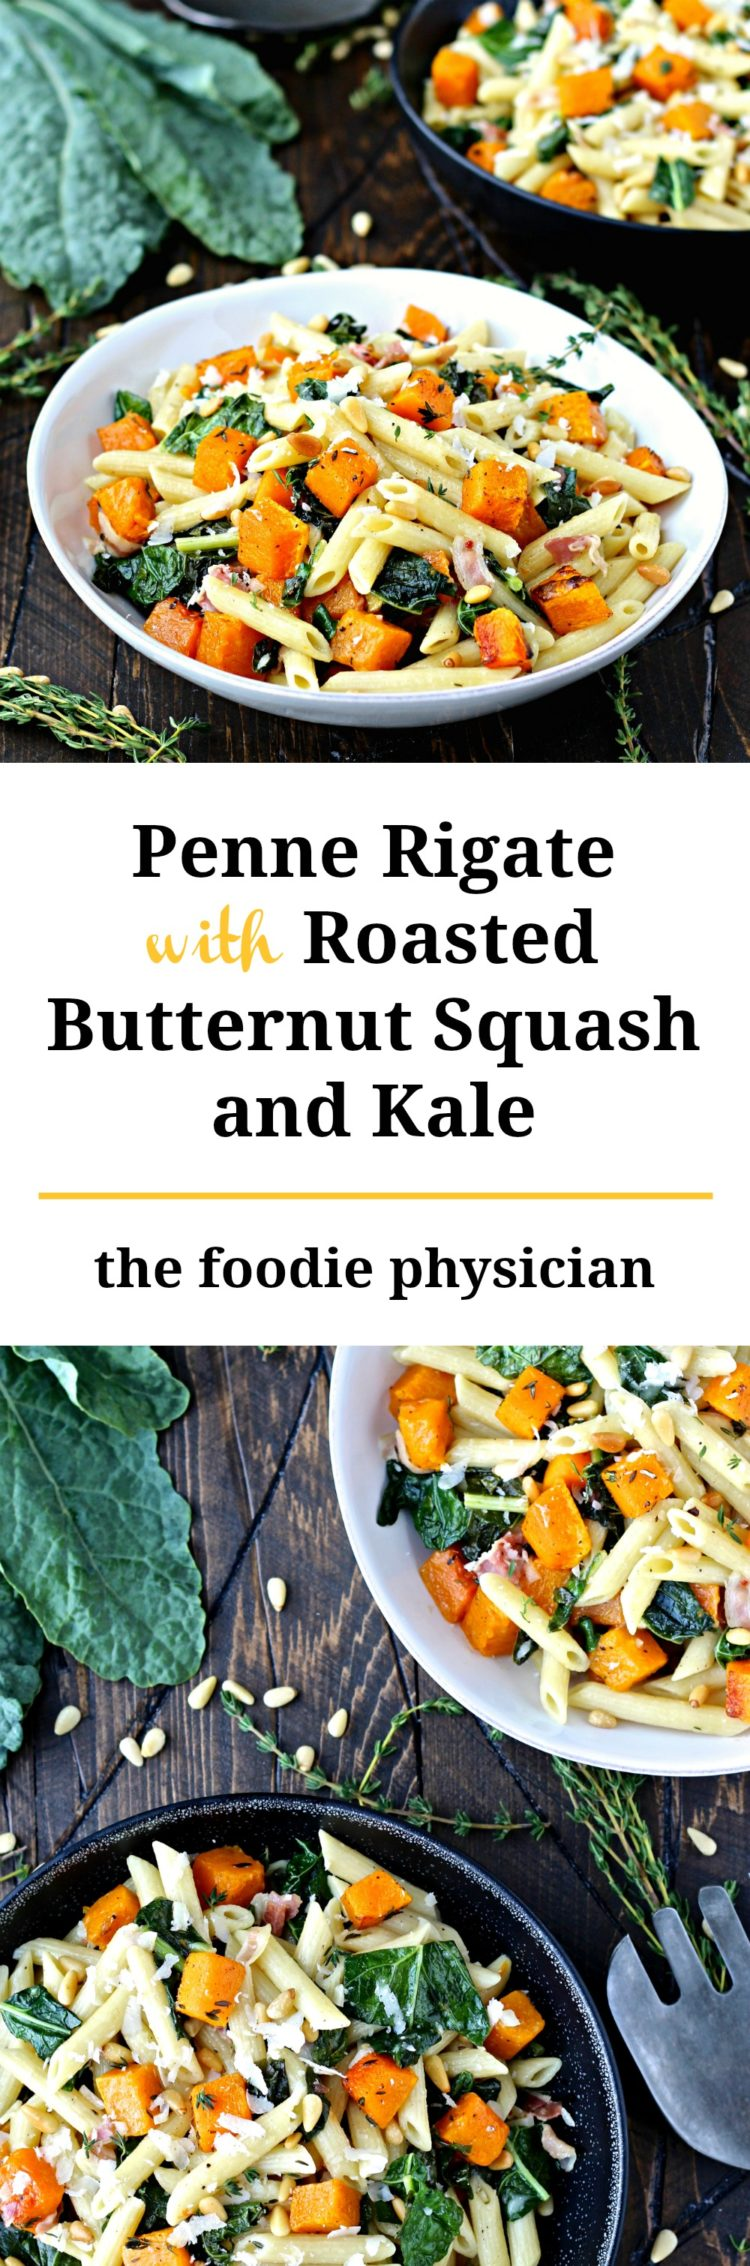 Penne with Roasted Butternut Squash and Kale | @foodiephysician